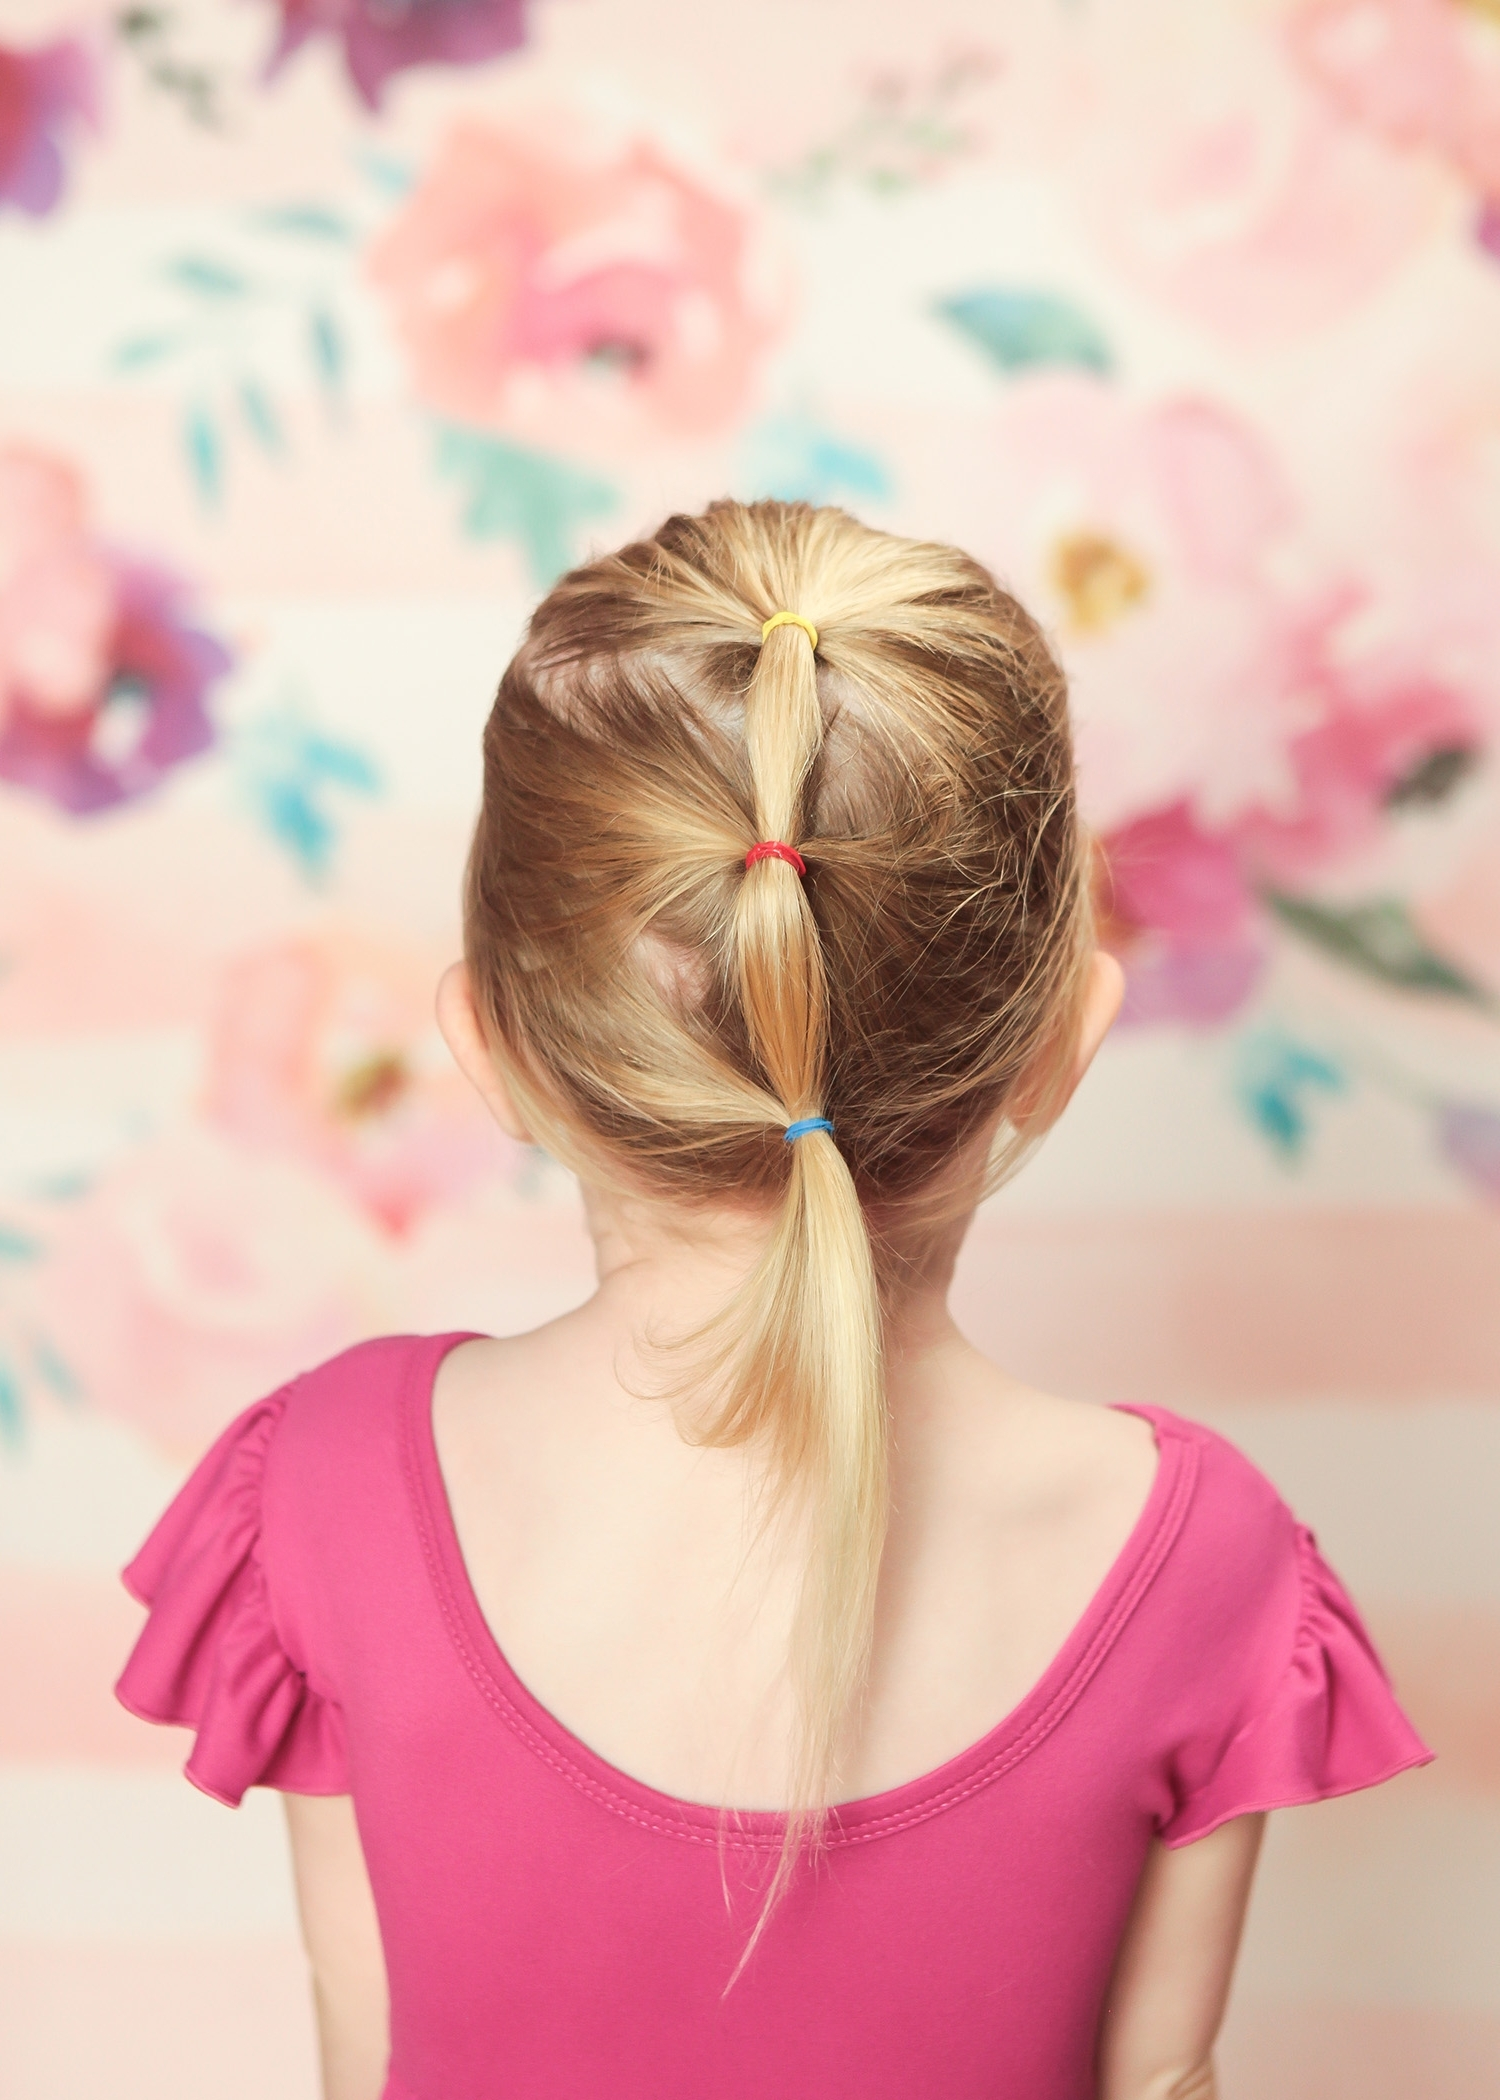 Trendy Ponytail Cascade Hairstyles For Toddler Hairstyles: 5 Ways To Dress Up A Kids' Ponytail – Lipgloss (View 19 of 20)